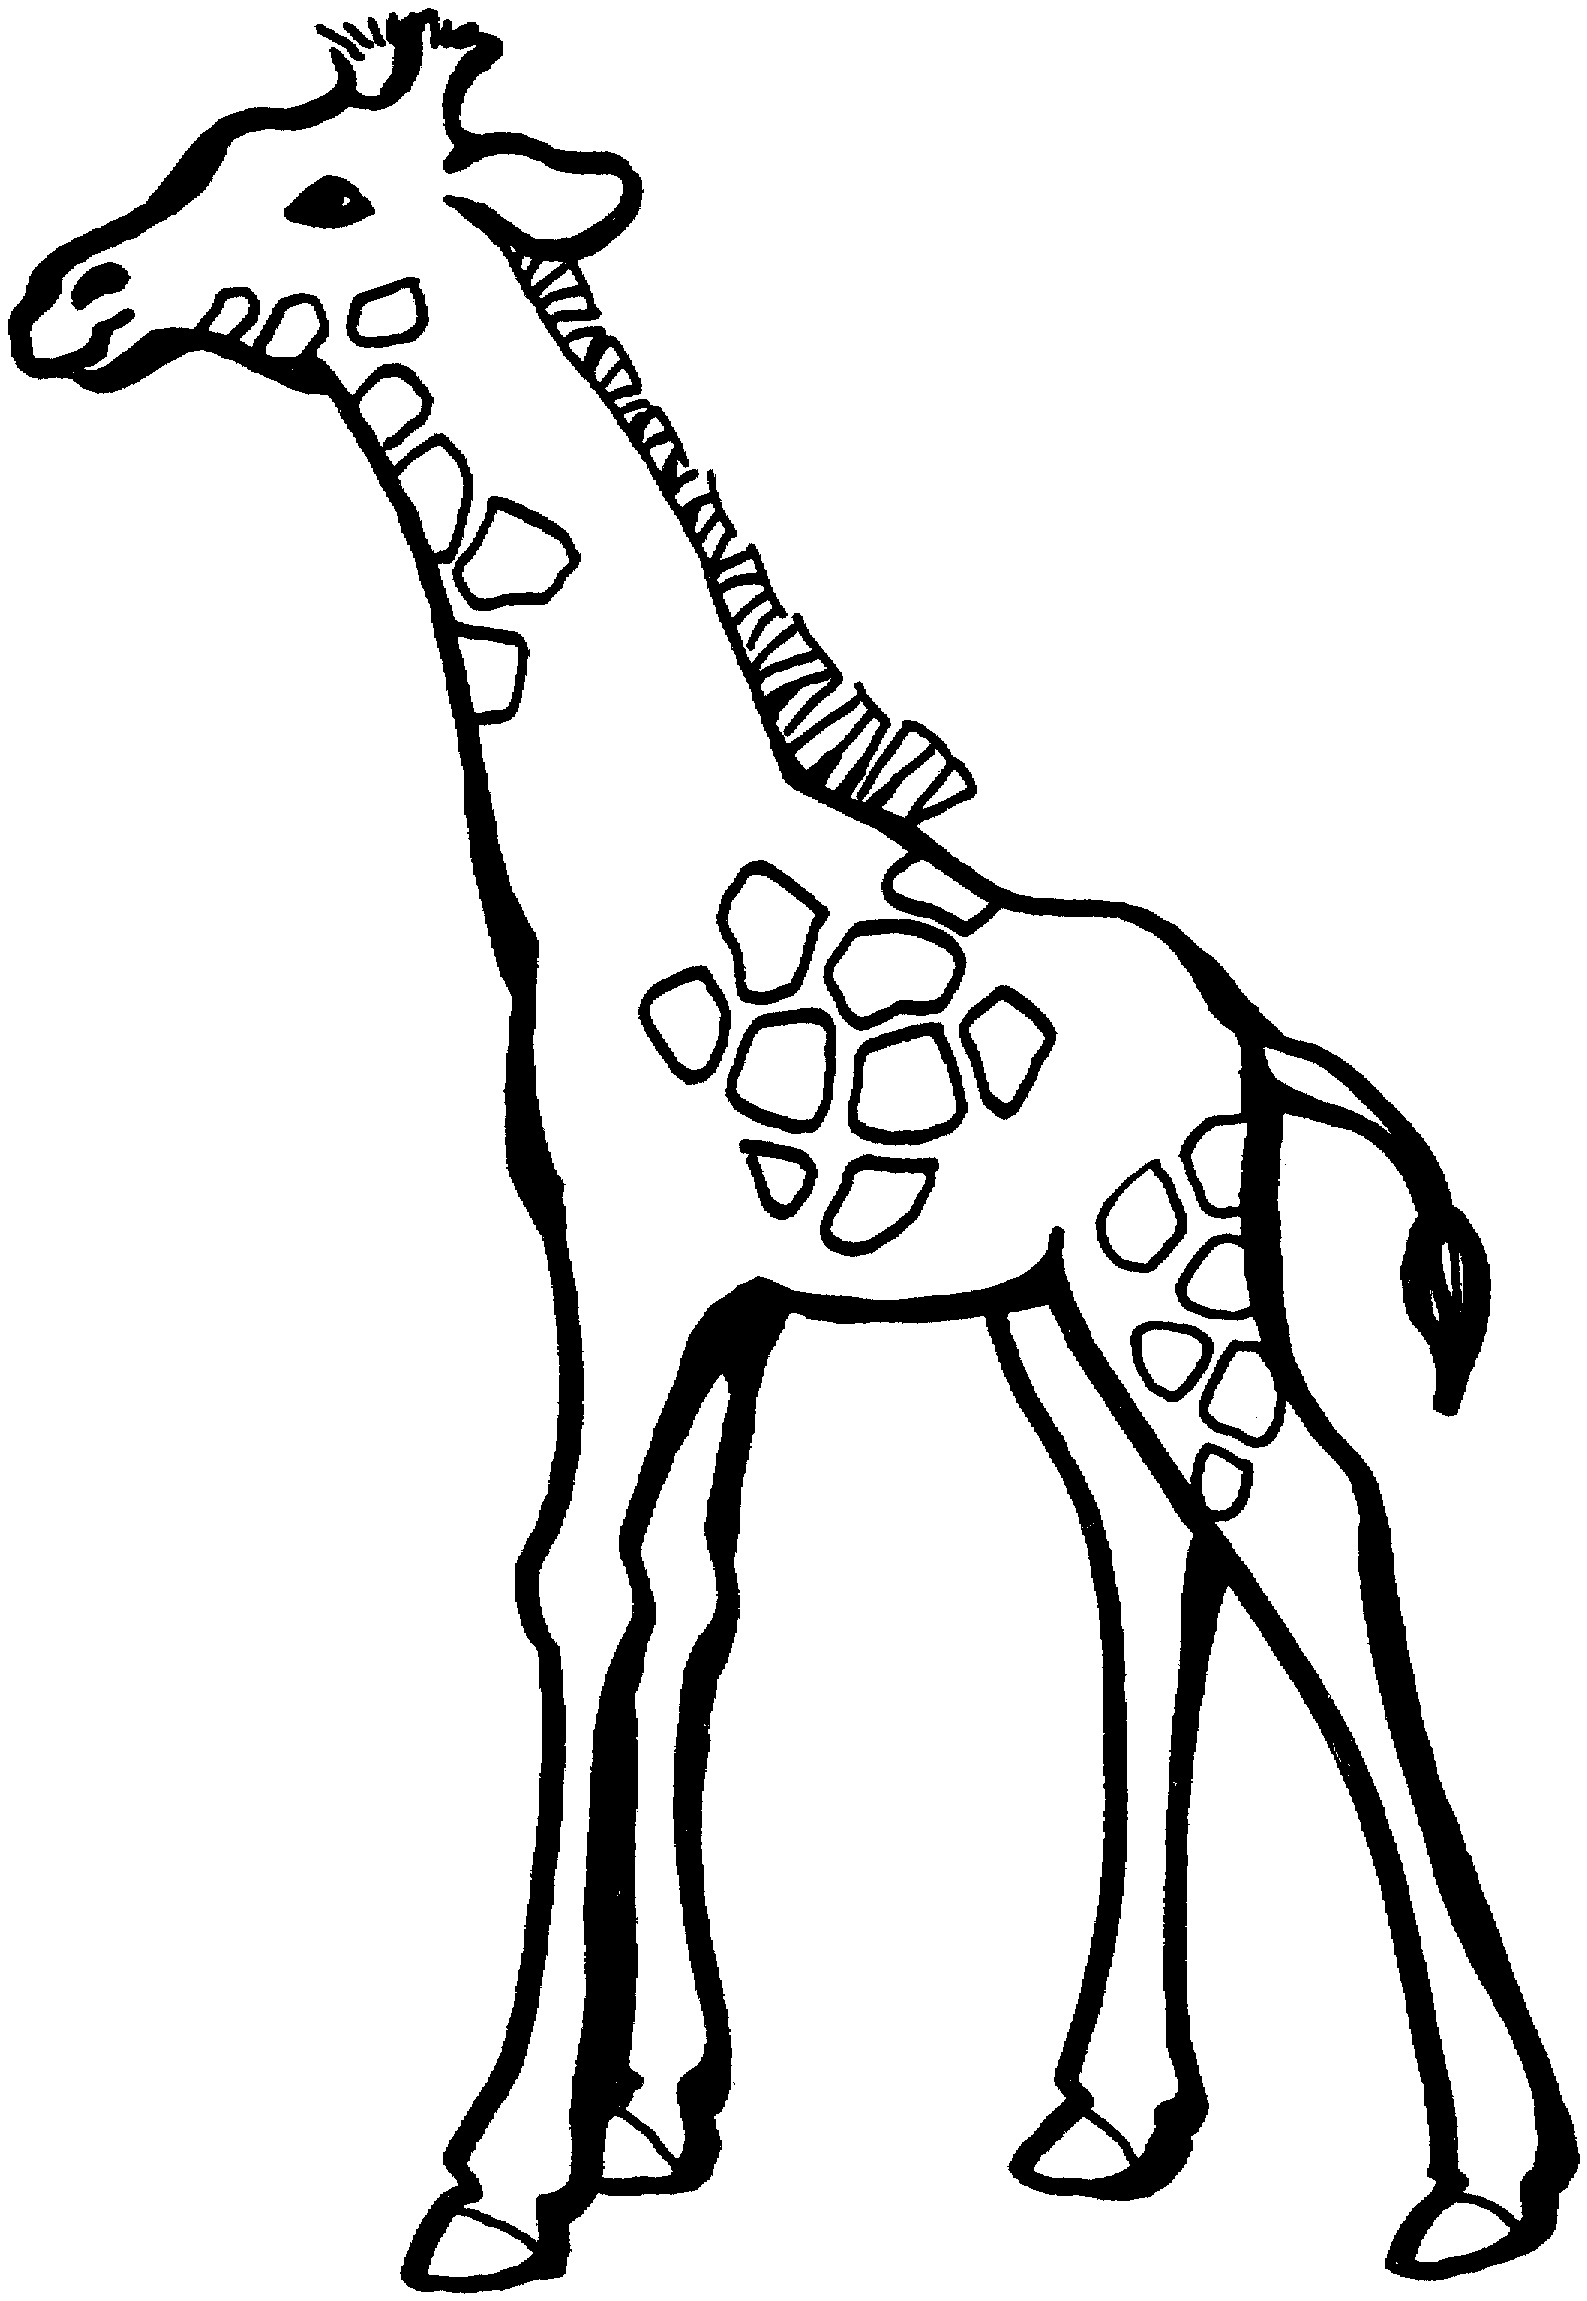 colouring pages of giraffe giraffes for kids giraffes kids coloring pages colouring pages giraffe of